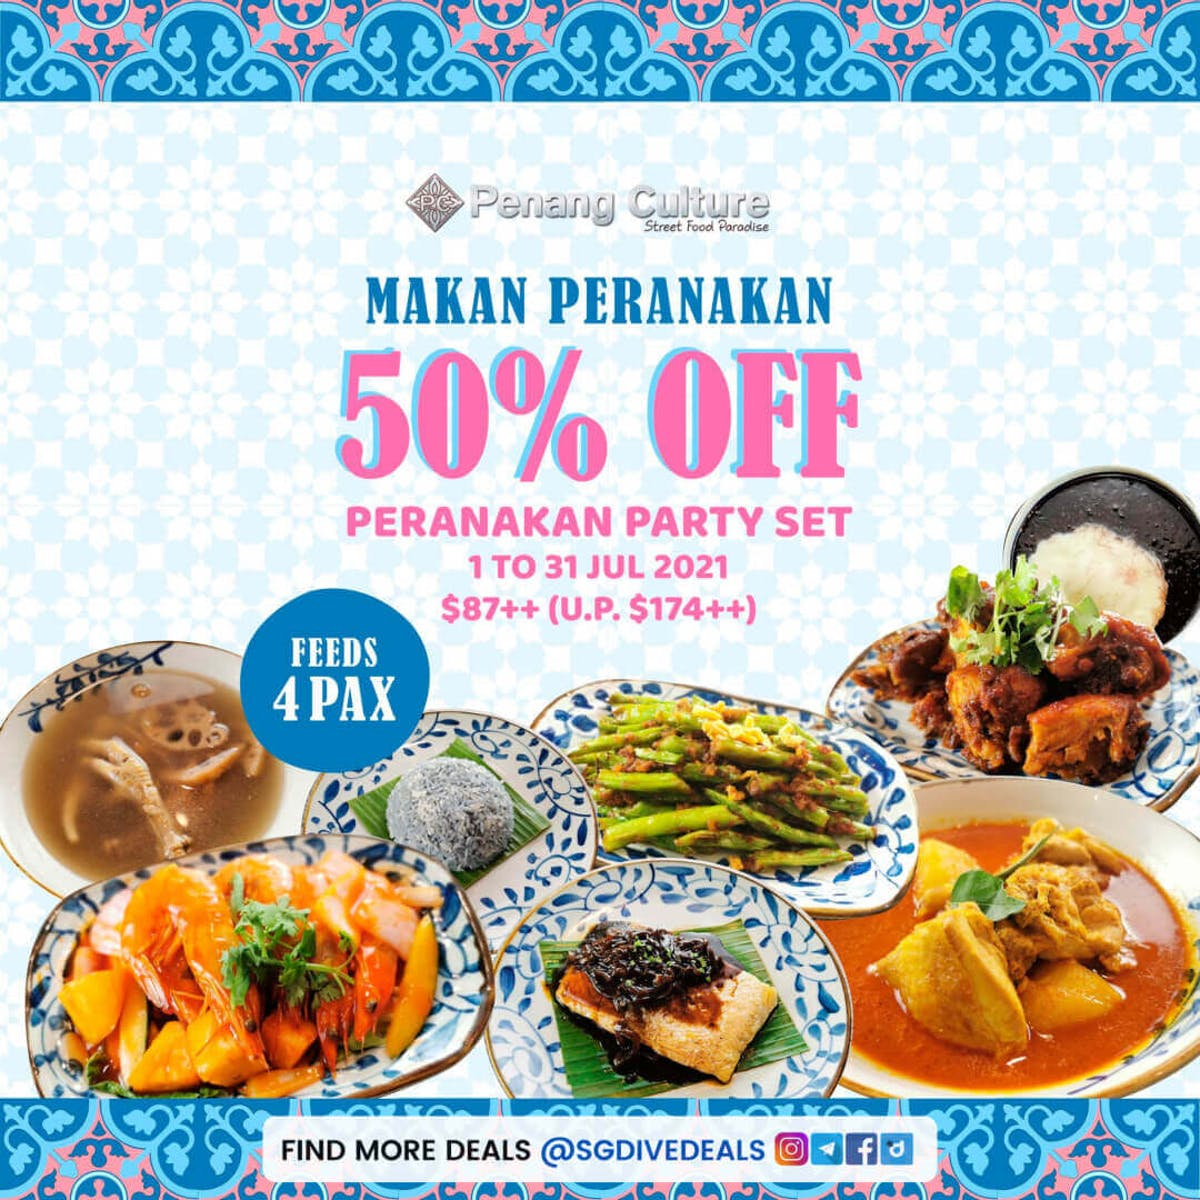 50% off Penang Culture's peranakan party set for friends and families